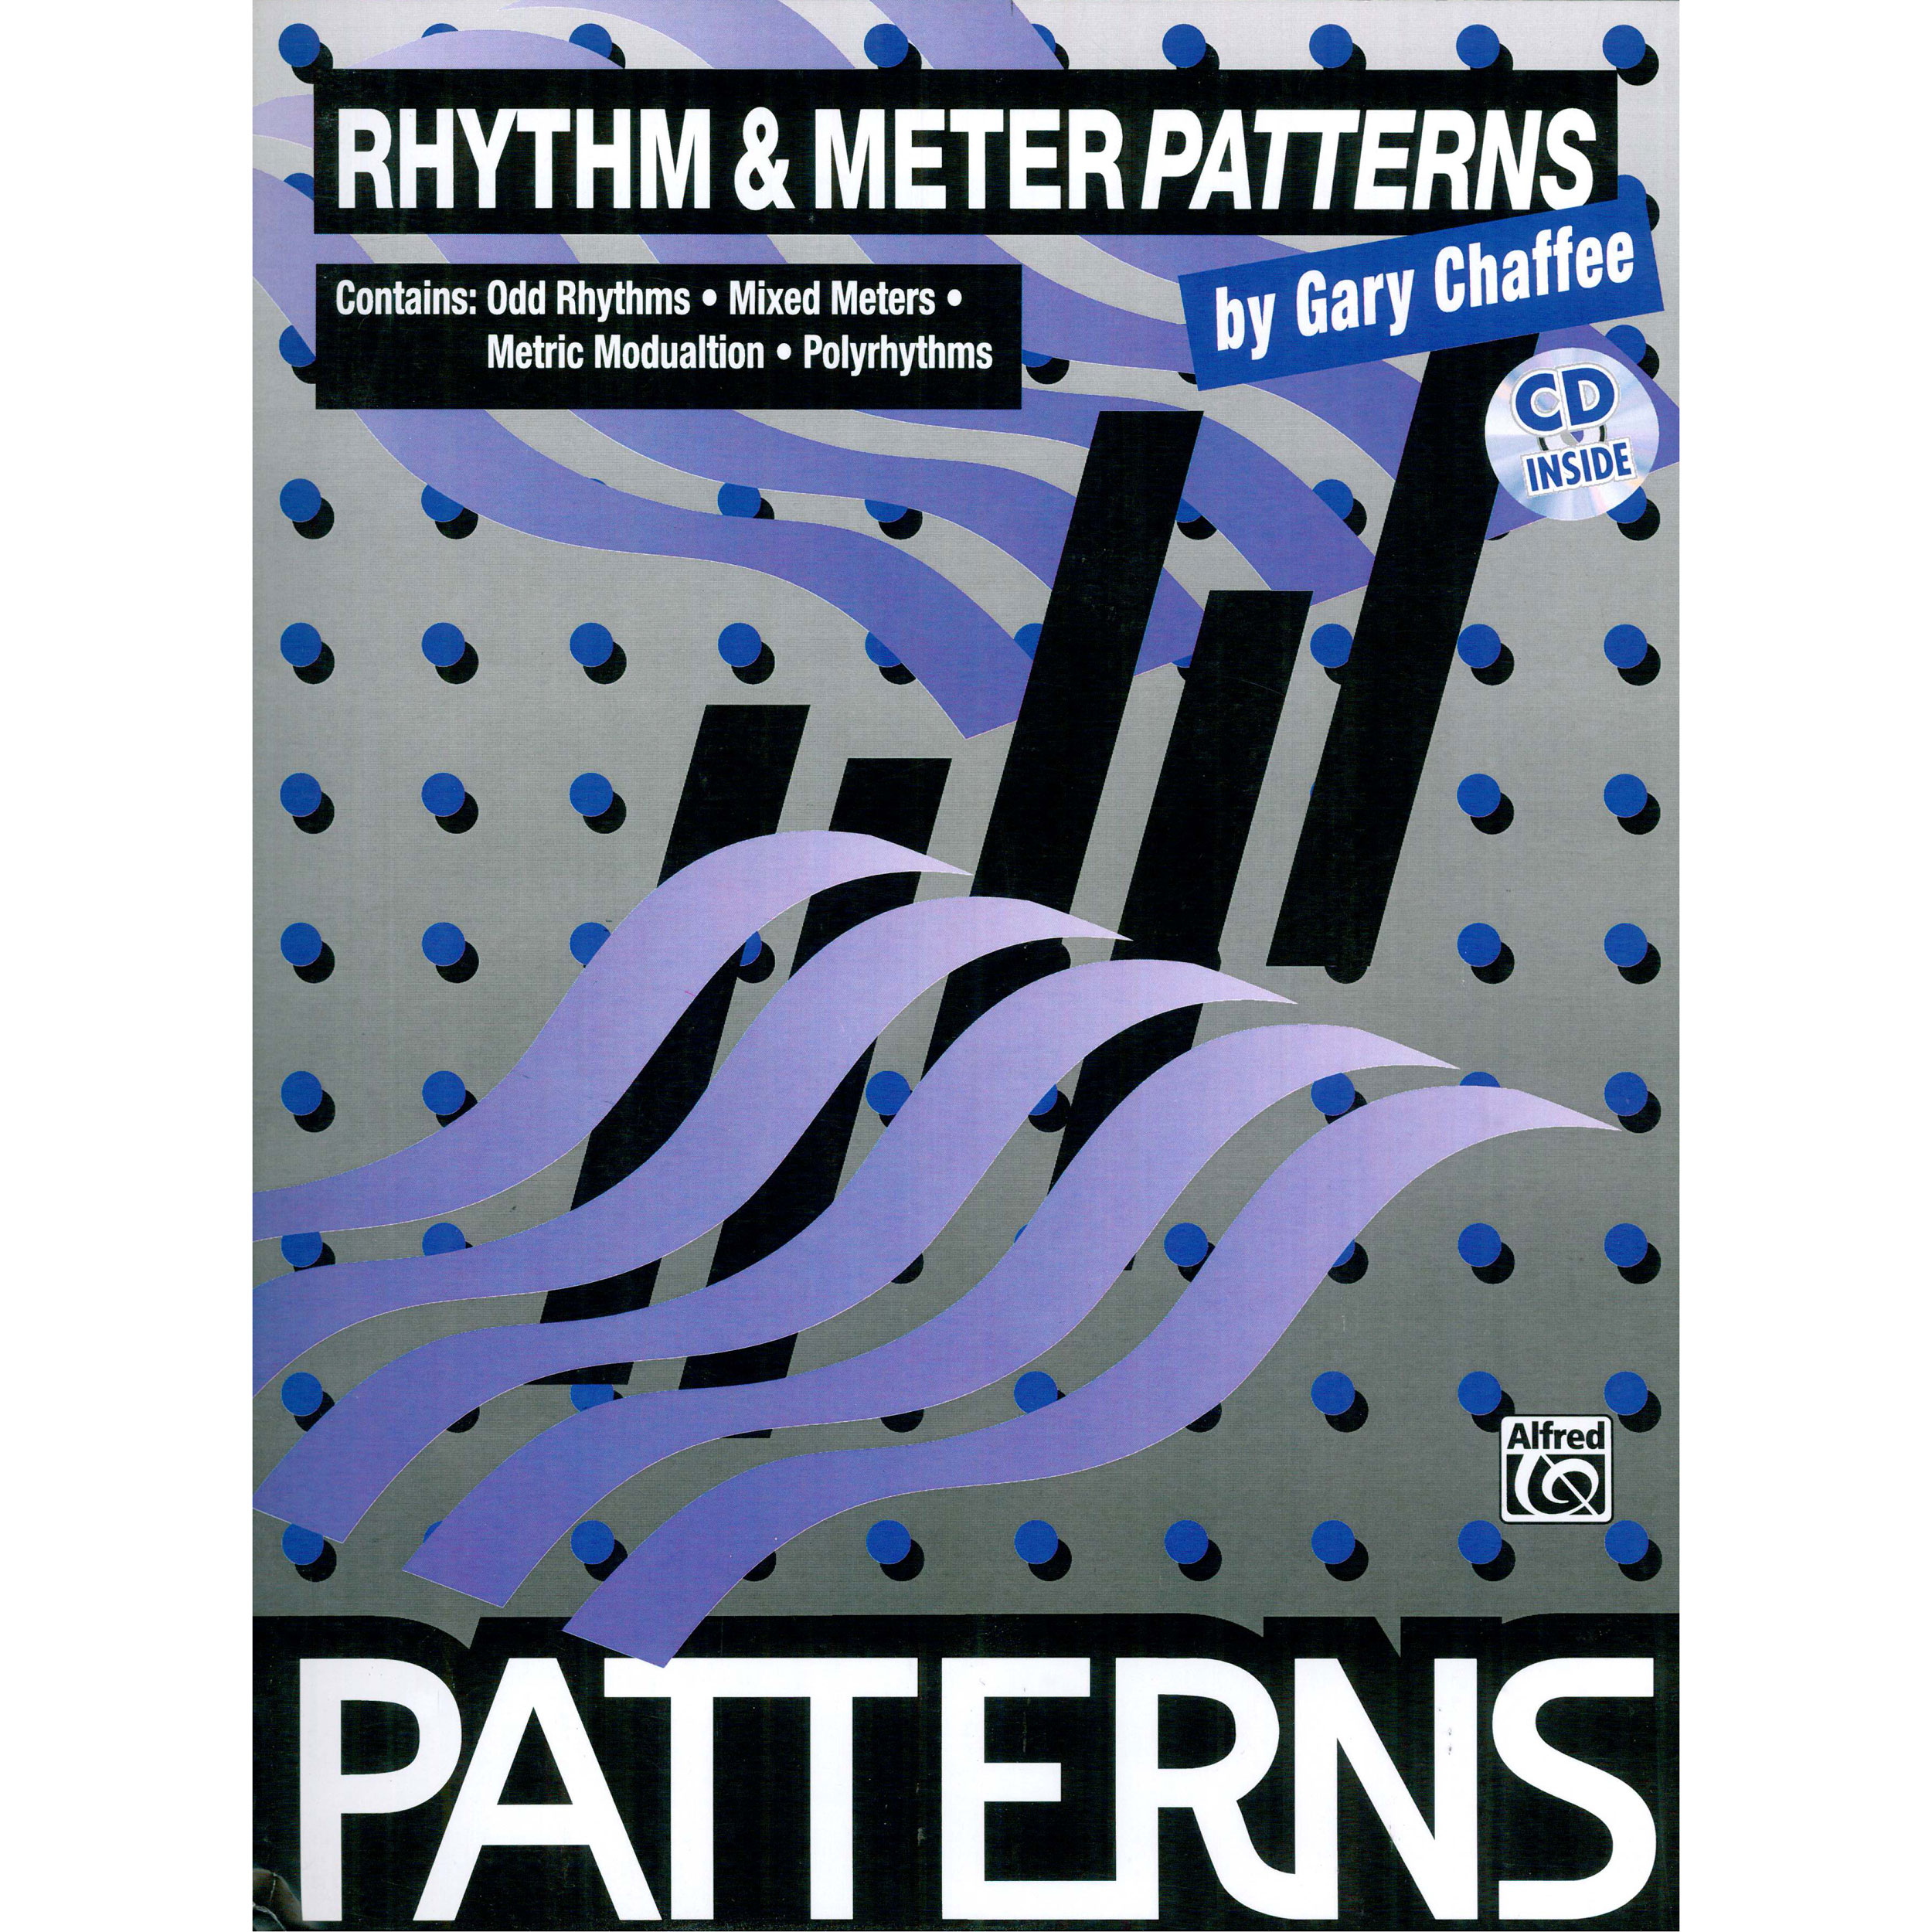 Rhythm and Meter Patterns by Gary Chaffee